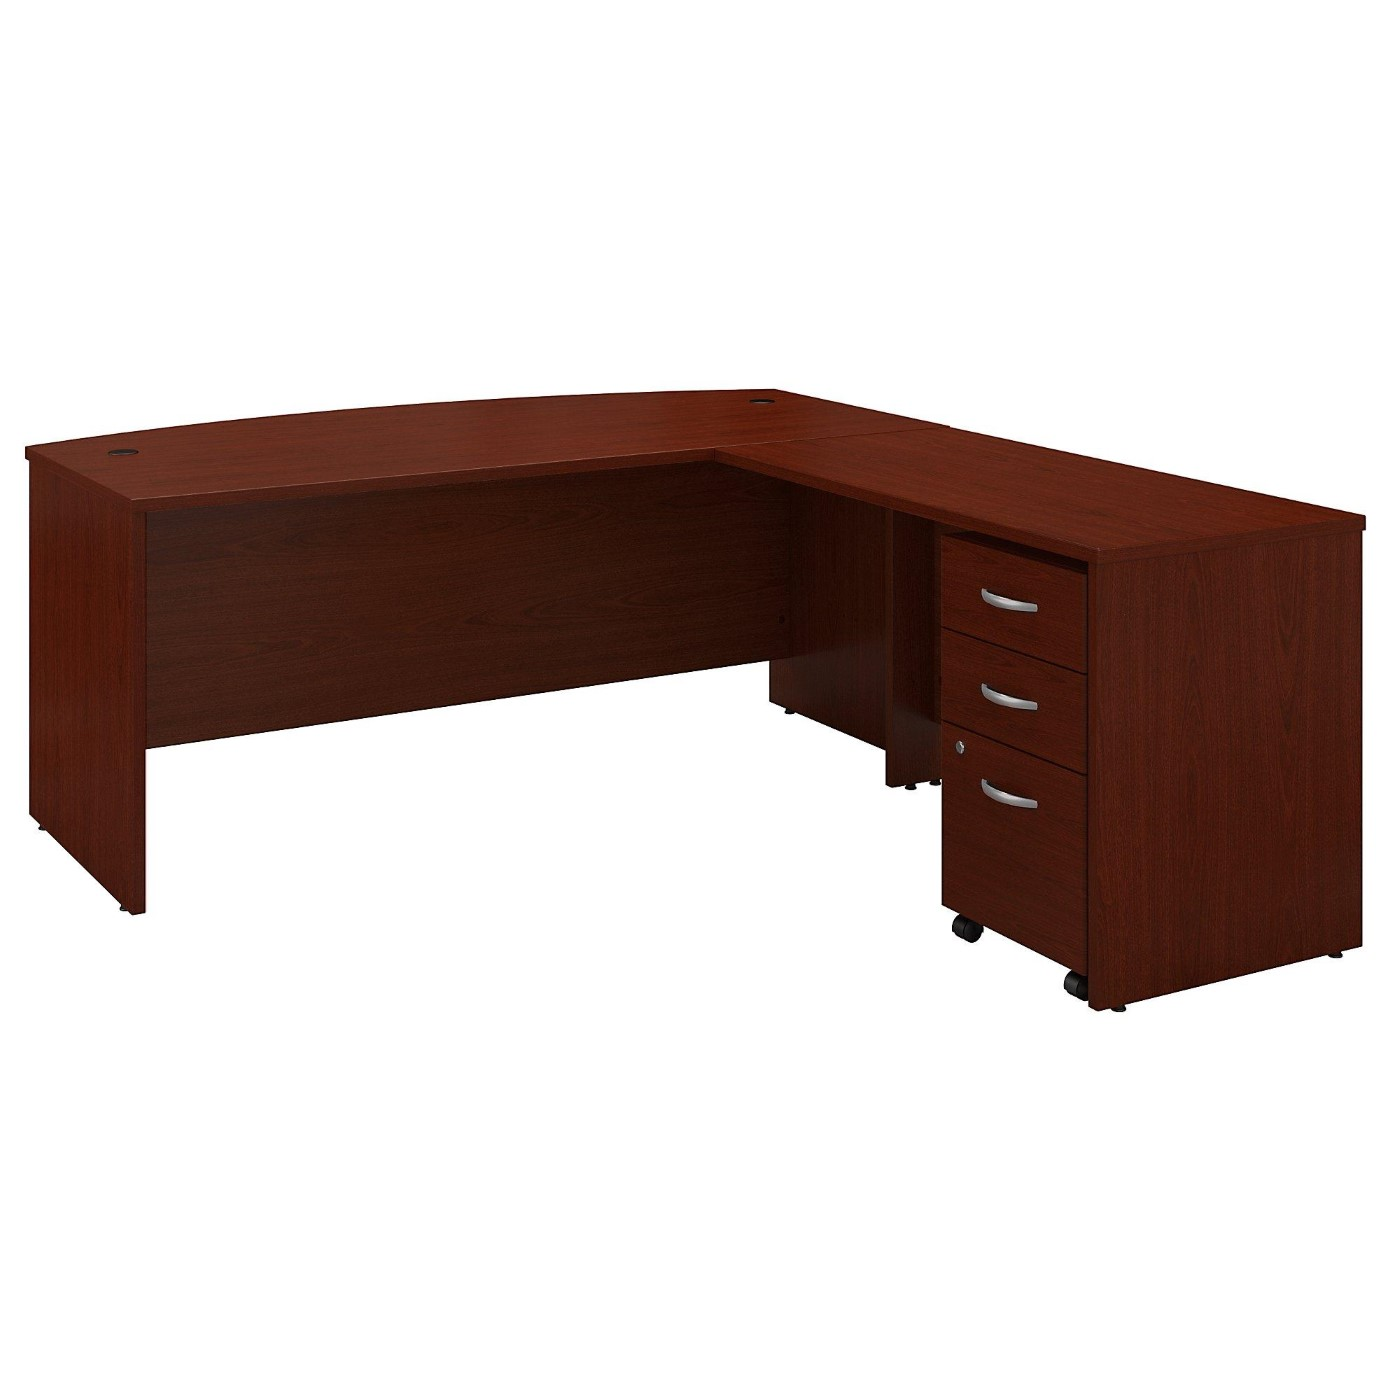 BUSH BUSINESS FURNITURE SERIES C 72W BOW FRONT L SHAPED DESK WITH 48W RETURN AND MOBILE FILE CABINET. FREE SHIPPING  VIDEO BELOW.